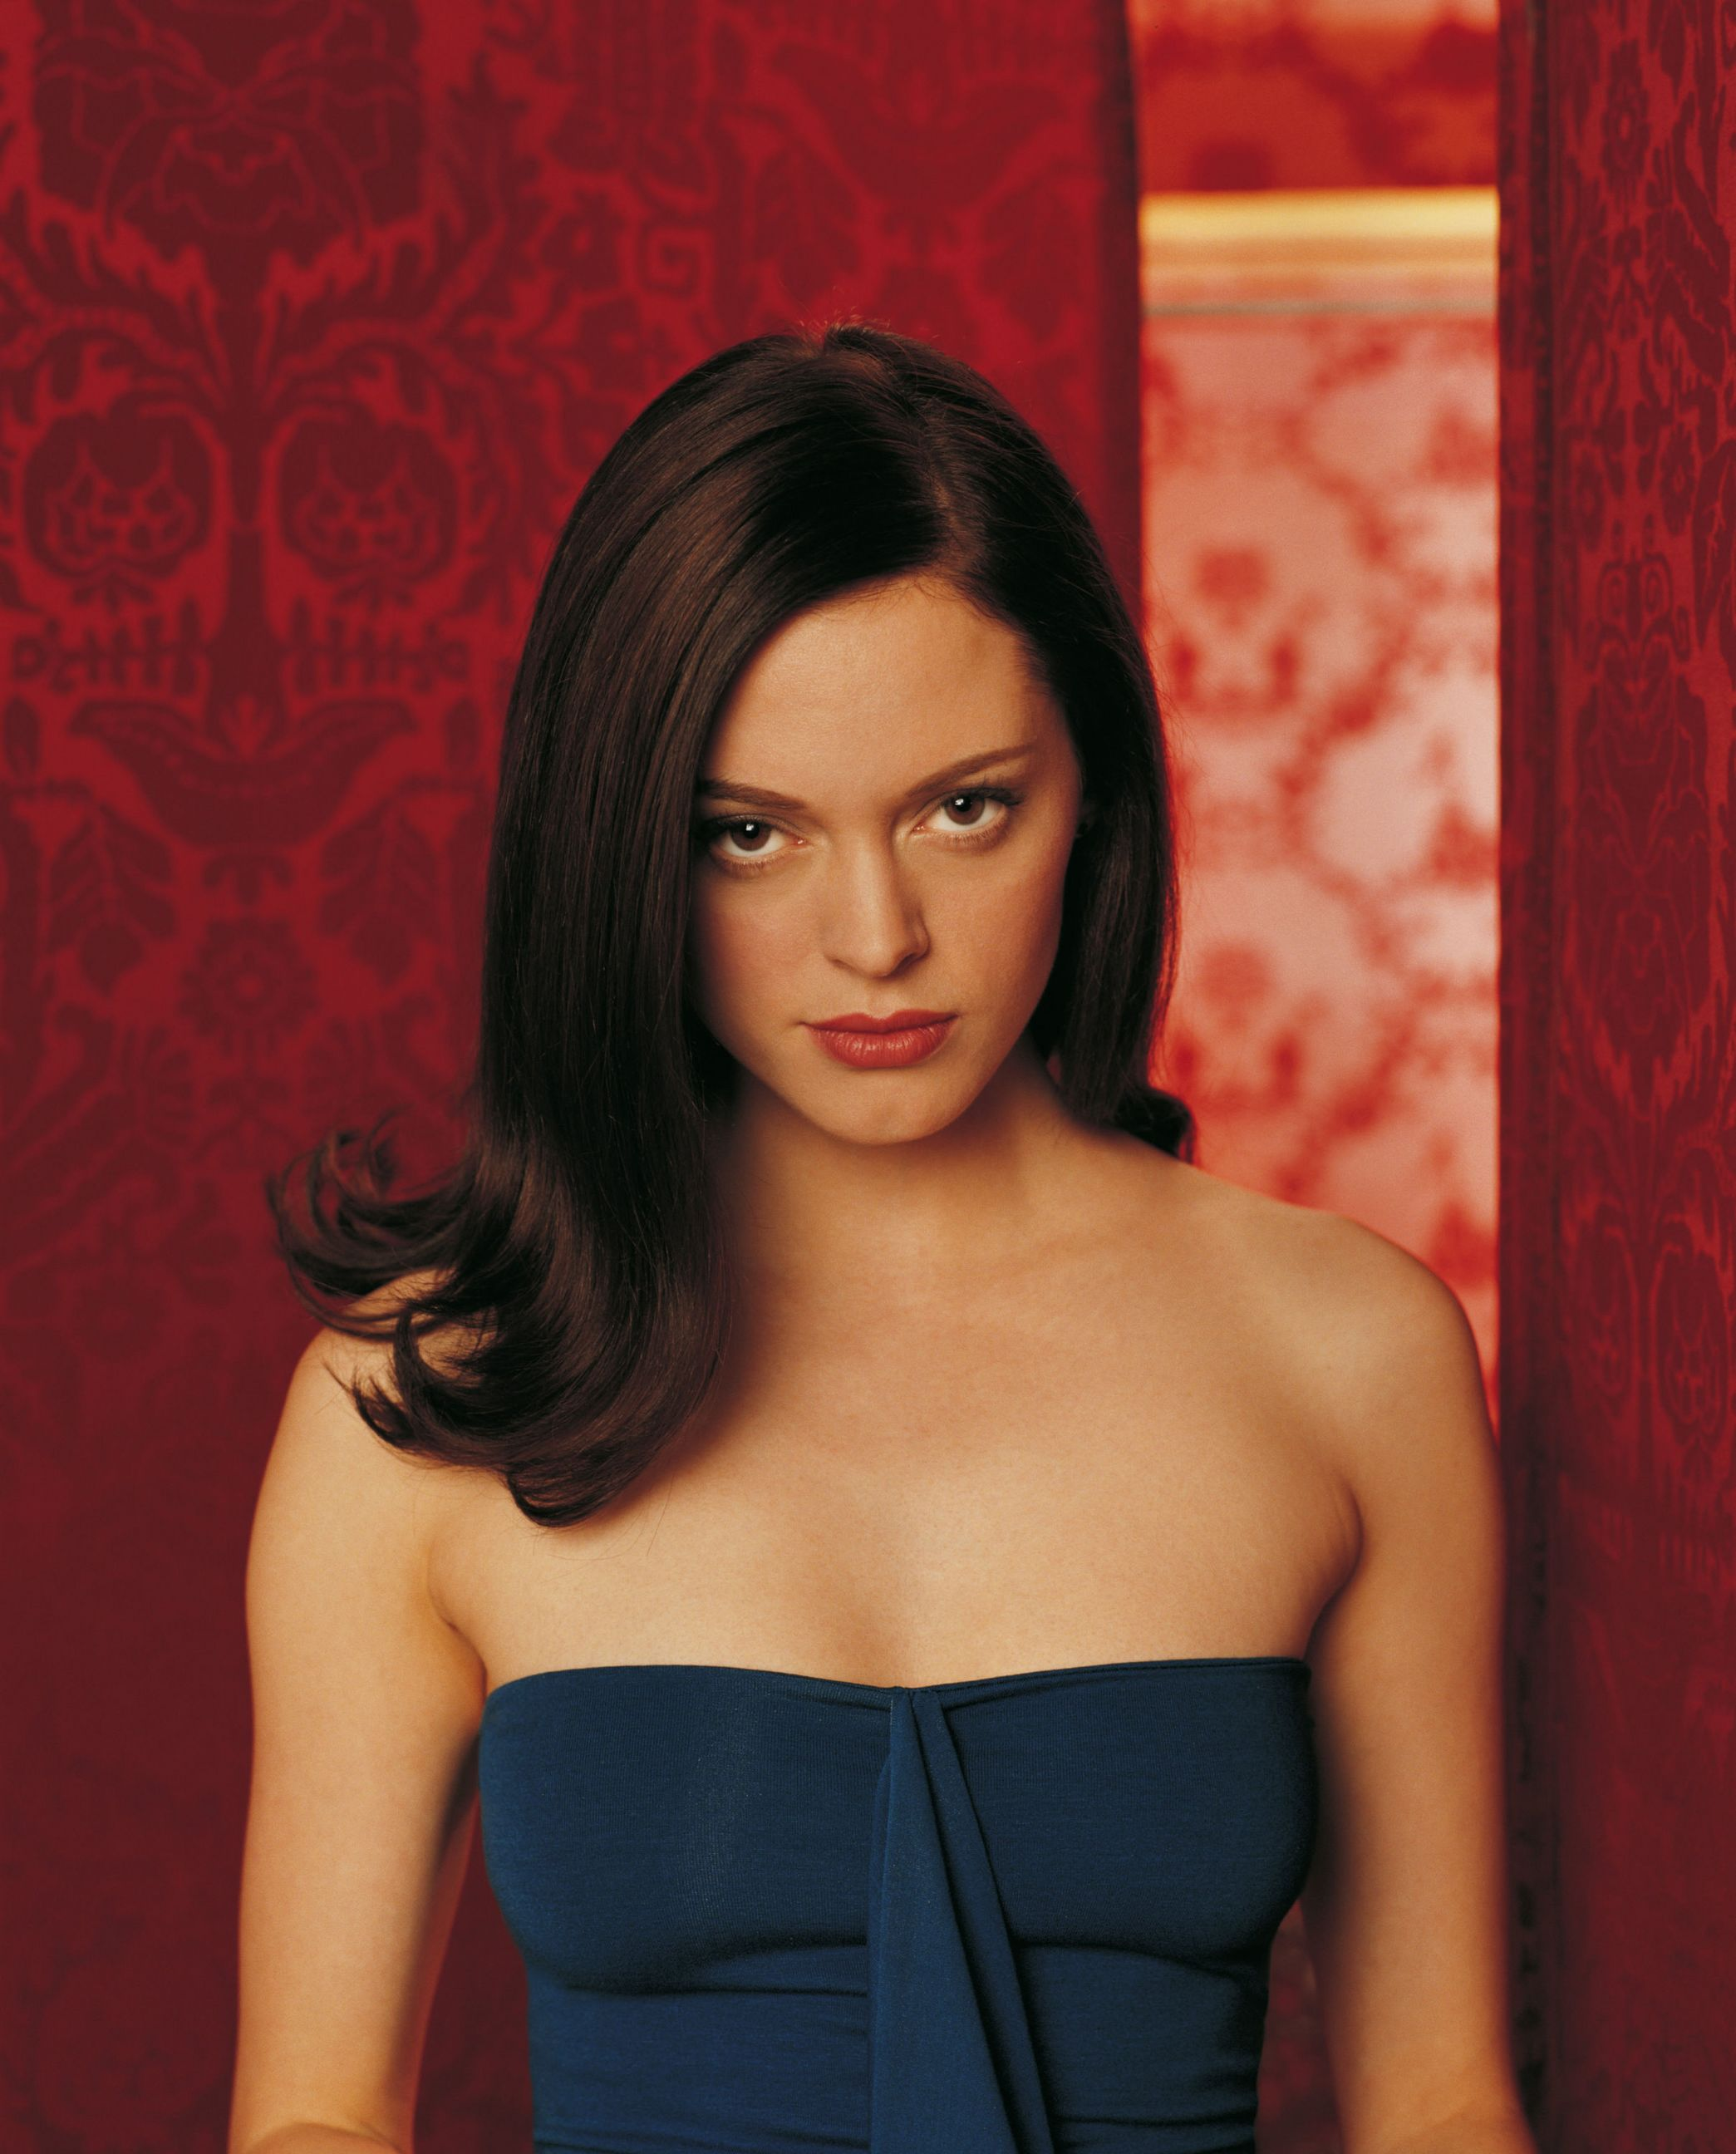 Charmed rose mcgowan paige matthews halliwell dvdbash published 10 february 2012 at 2089 2592 in charmed altavistaventures Gallery